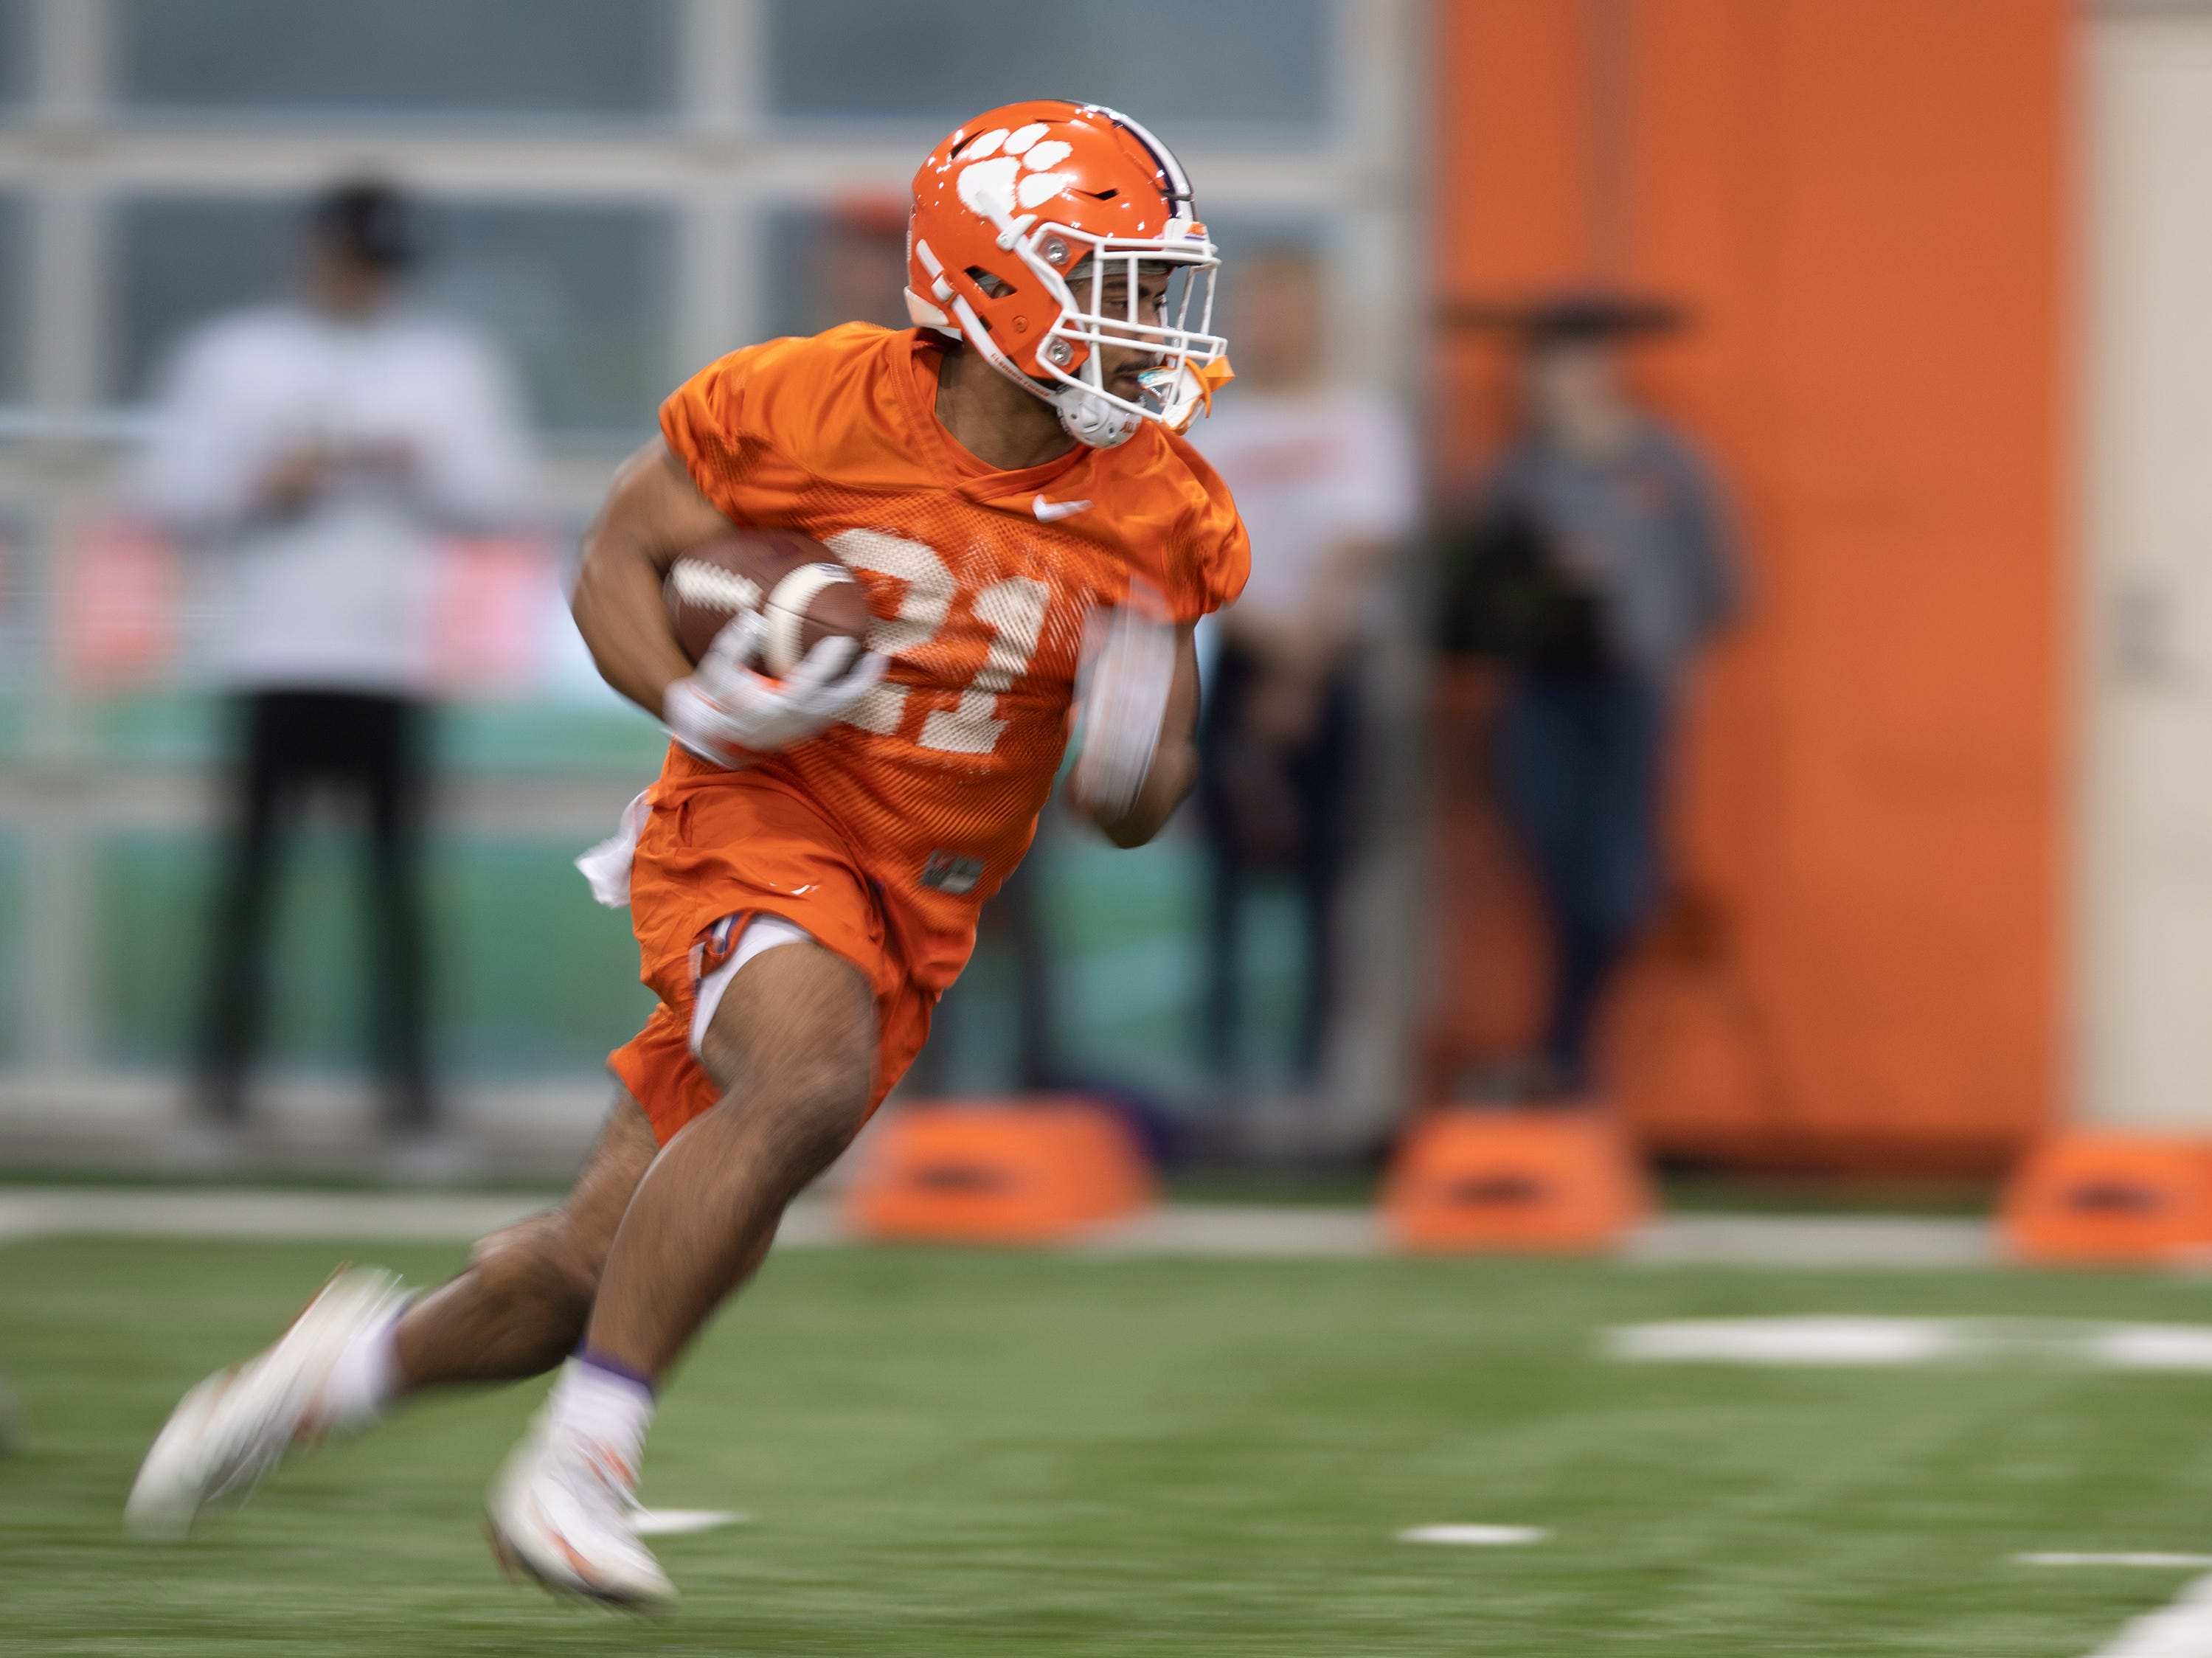 Clemson running back Darien Rencher (21) runs through drills during football practice at the Poe Indoor Football Facility Friday, Mar. 1, 2019.